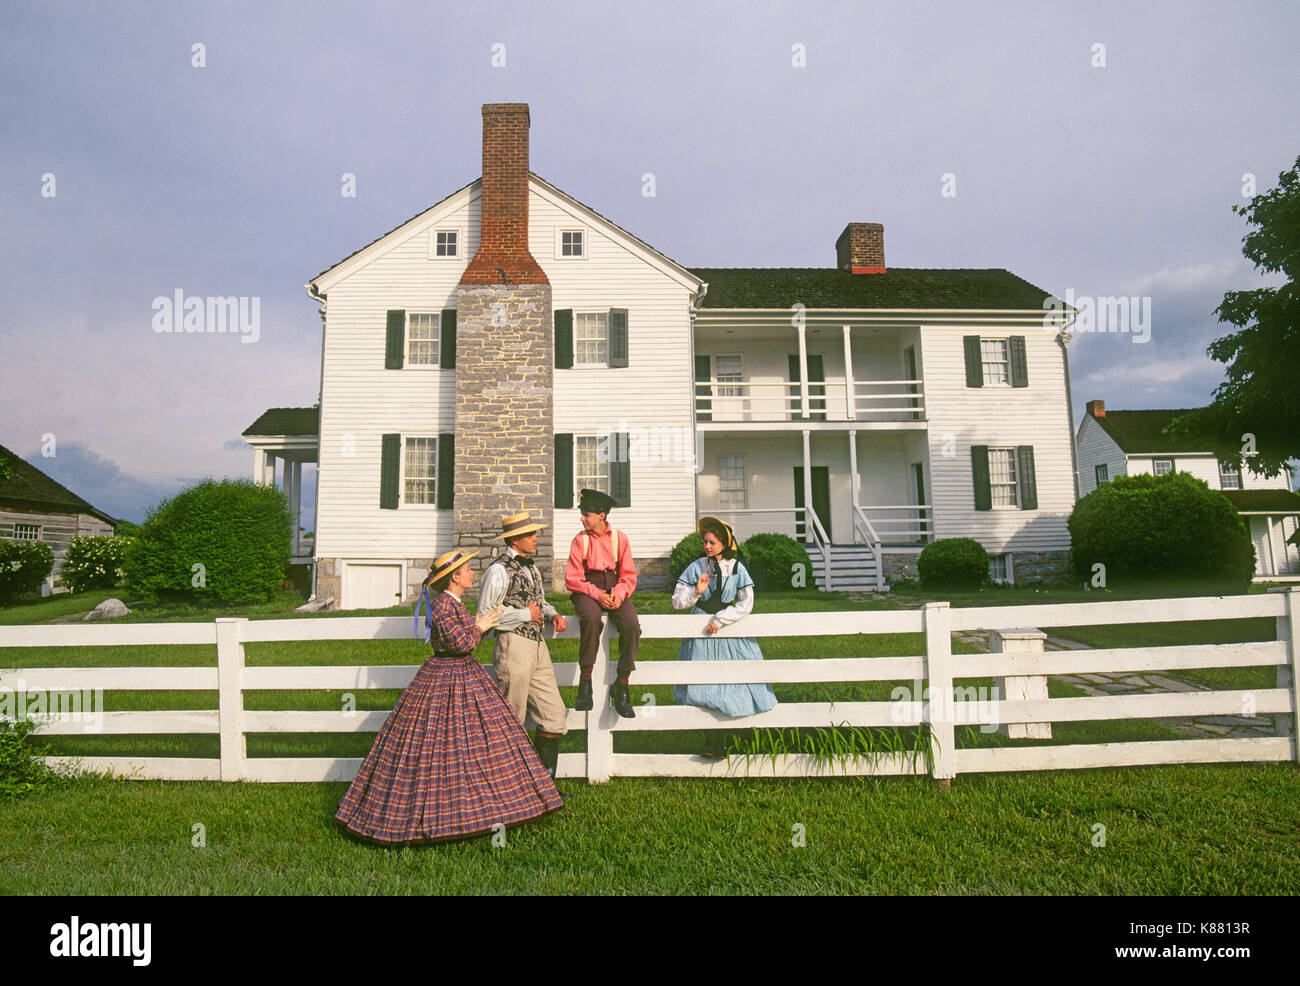 A family dressed in period, Civil War clothing, at Civil War era Bushong Farm on New Market  Battlefield State Park, New Market,Virginia - Stock Image